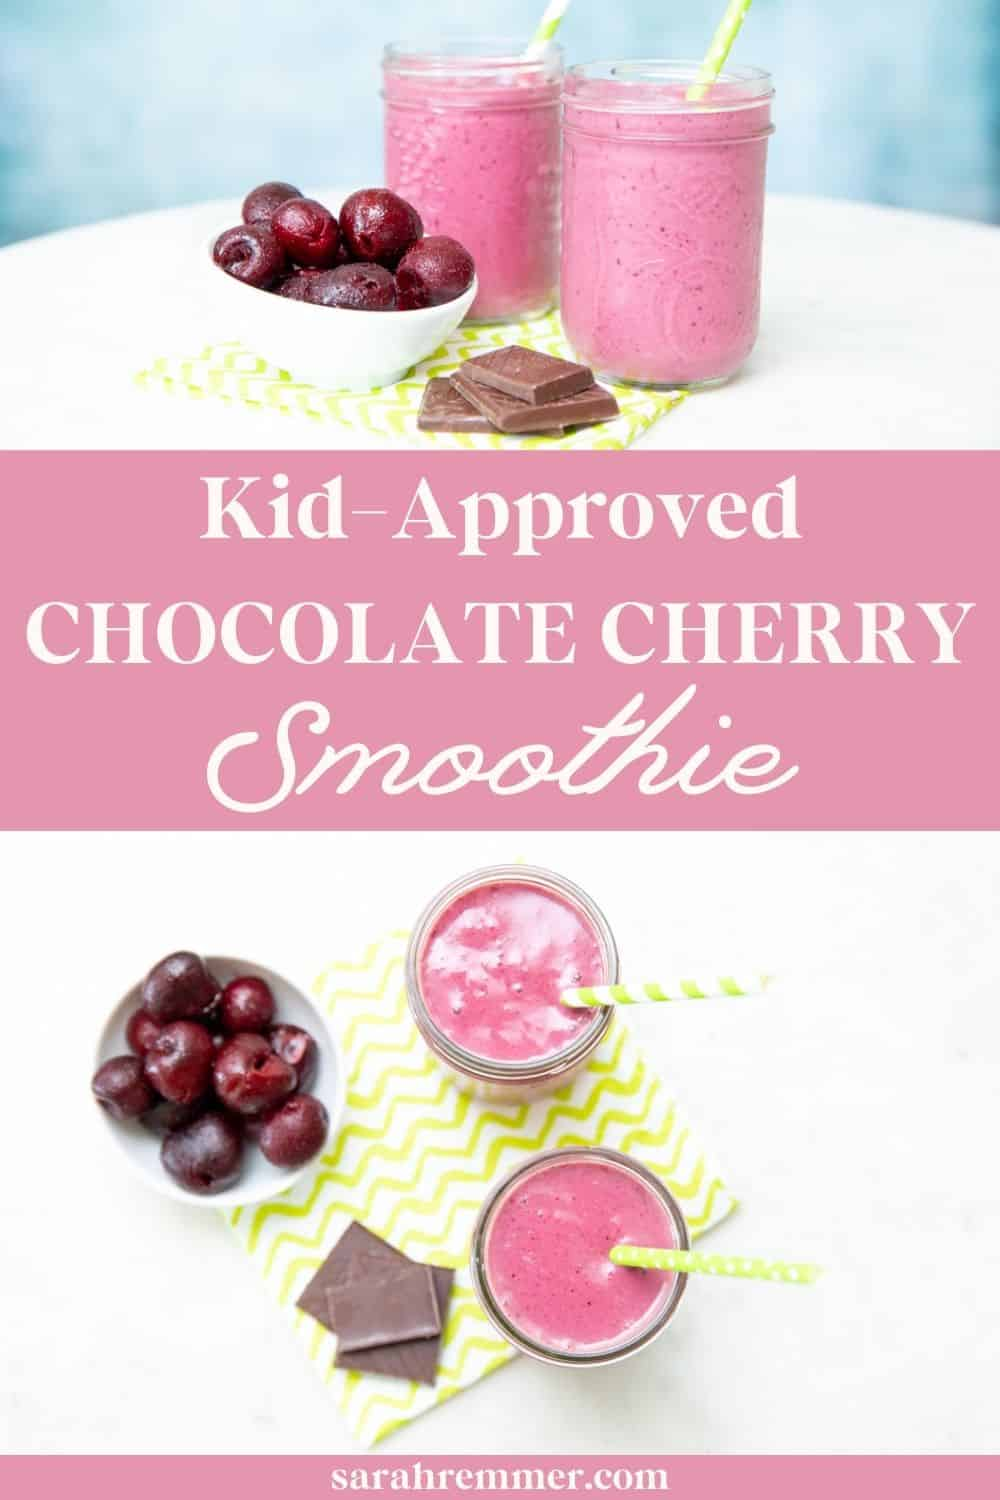 This Chocolate Cherry Smoothie is healthy, delicious, vegan-friendly and kid-approved! It is made with 6 simple ingredients and is loaded with naturally sweet and tart flavors as well as  nutrition!